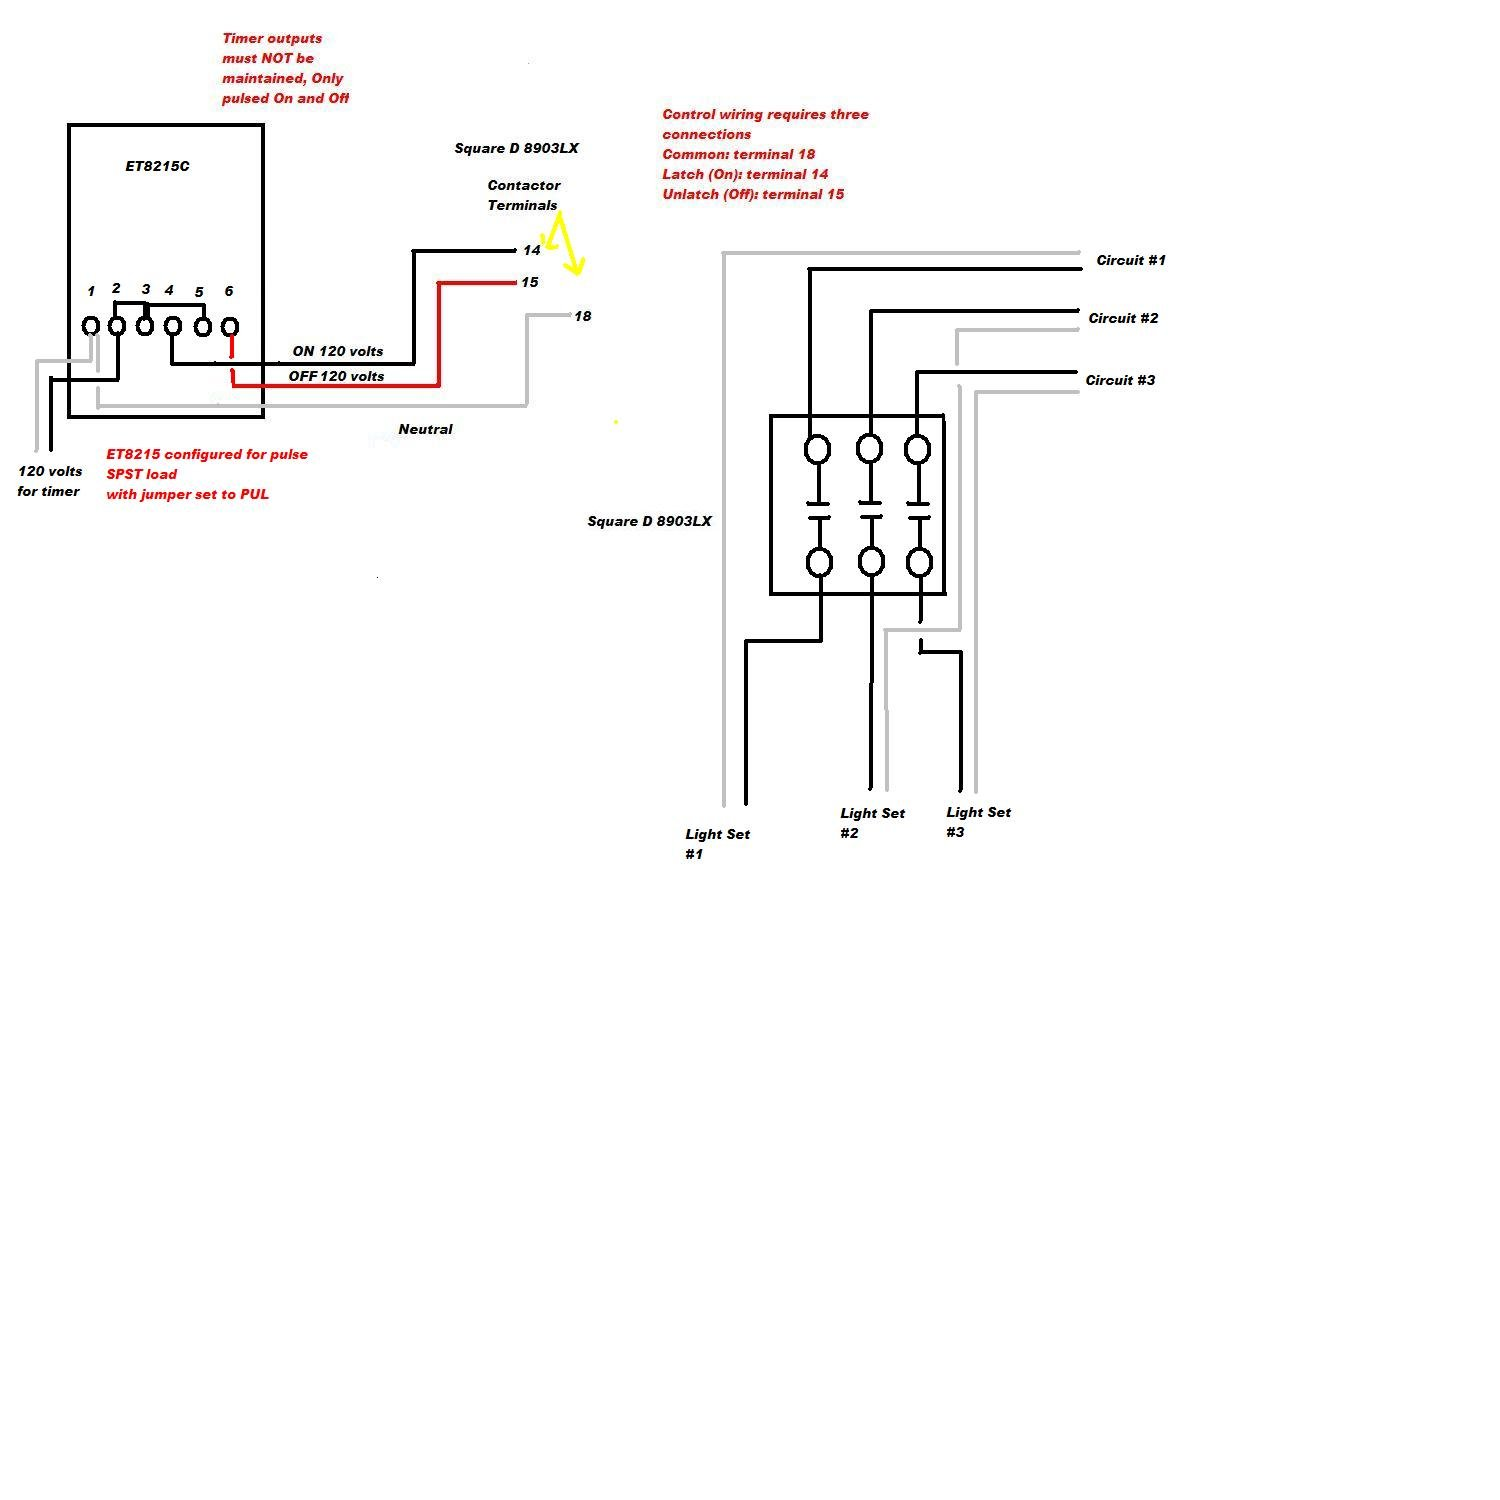 wiring diagram for square d lighting contactors diagram square d lighting contactor wiring diagram xcyyxh com